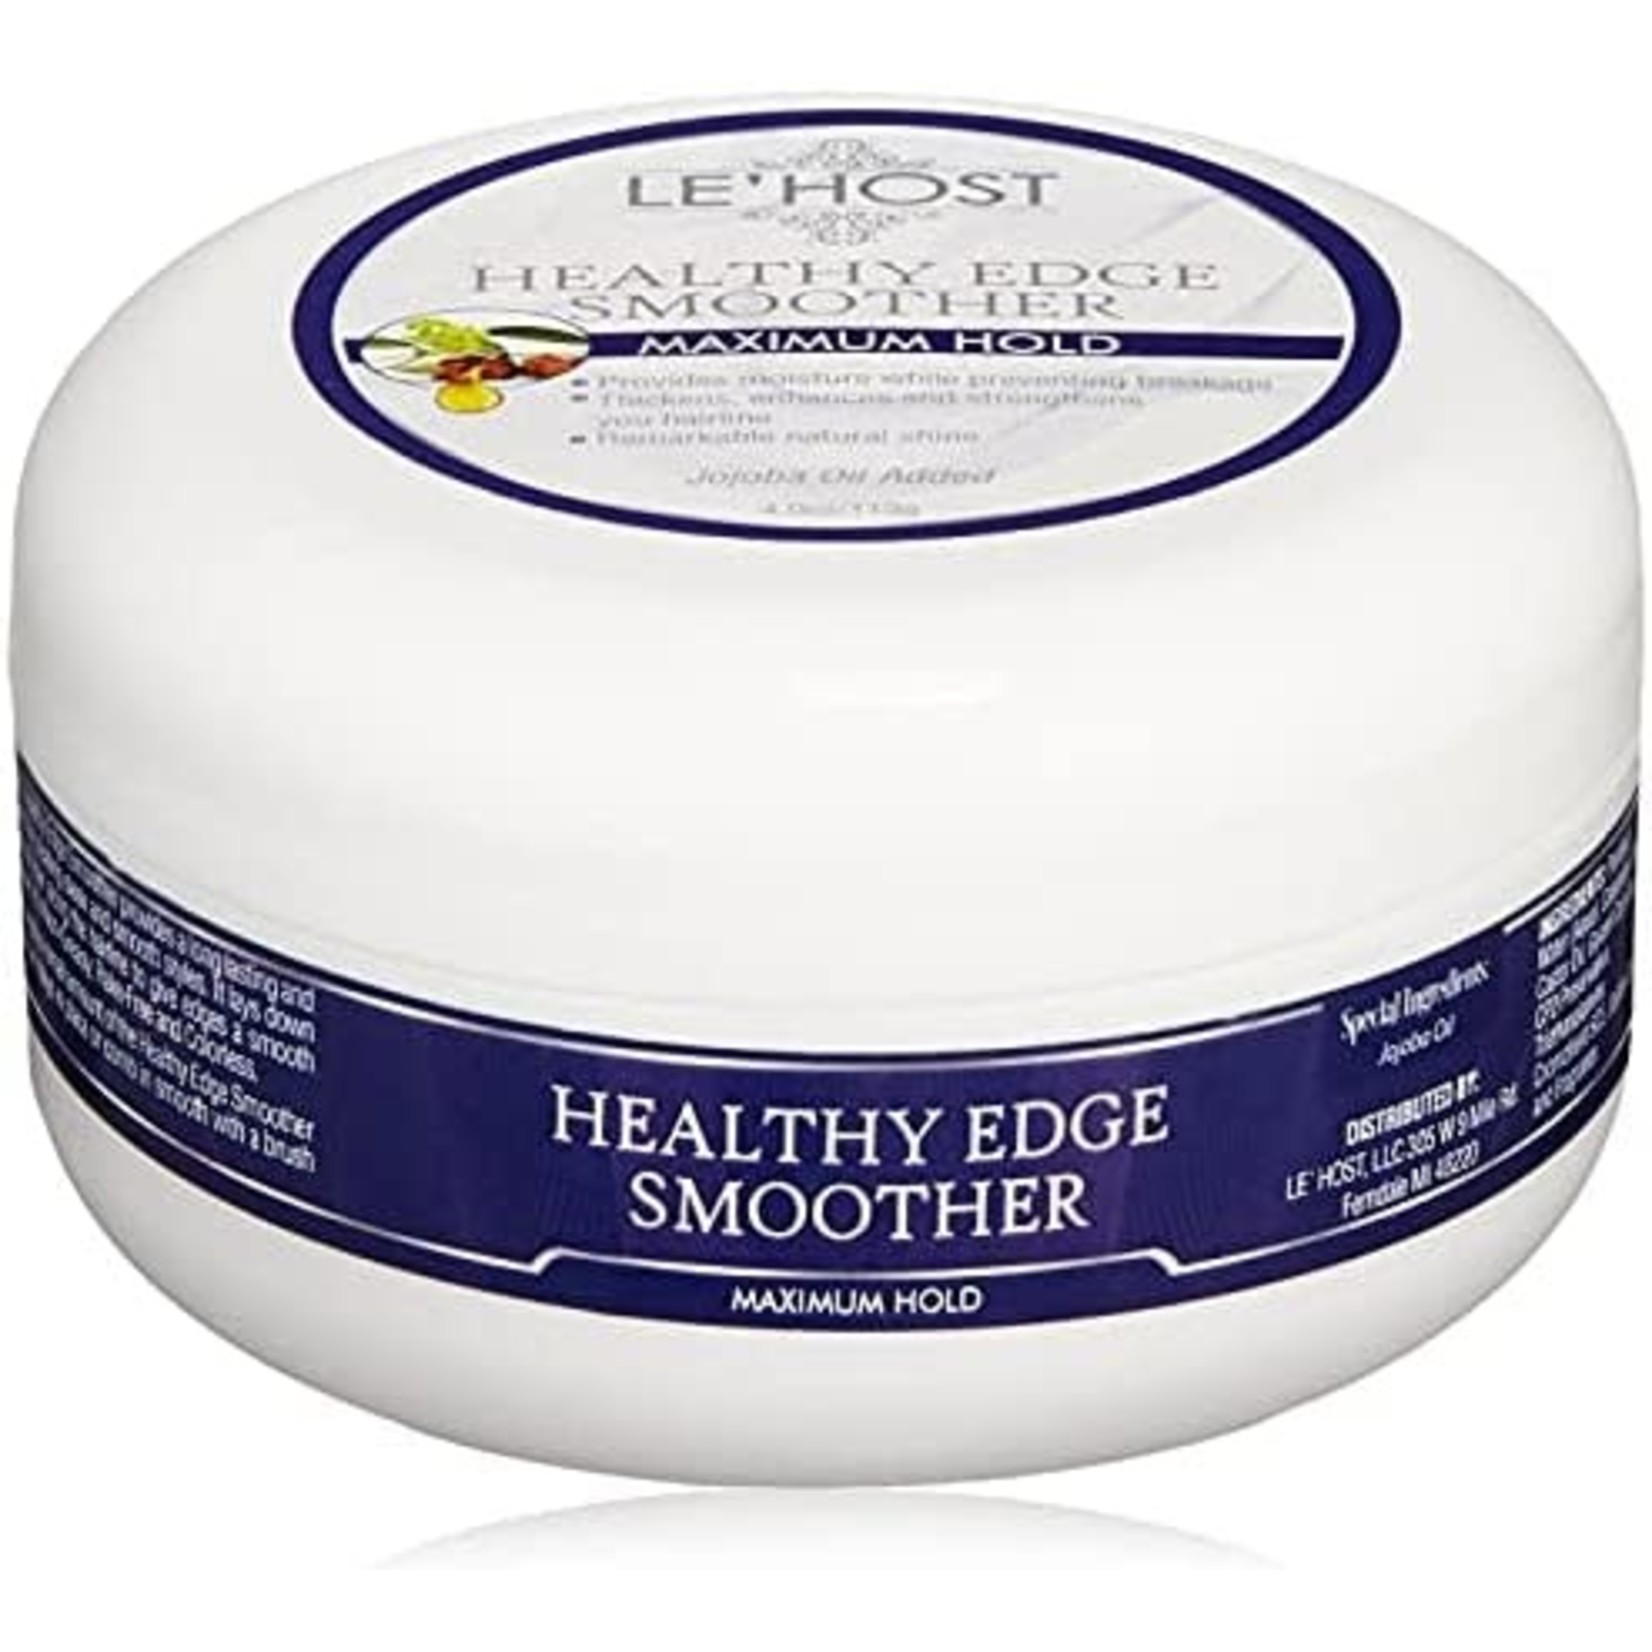 Healthy Edge Smoother